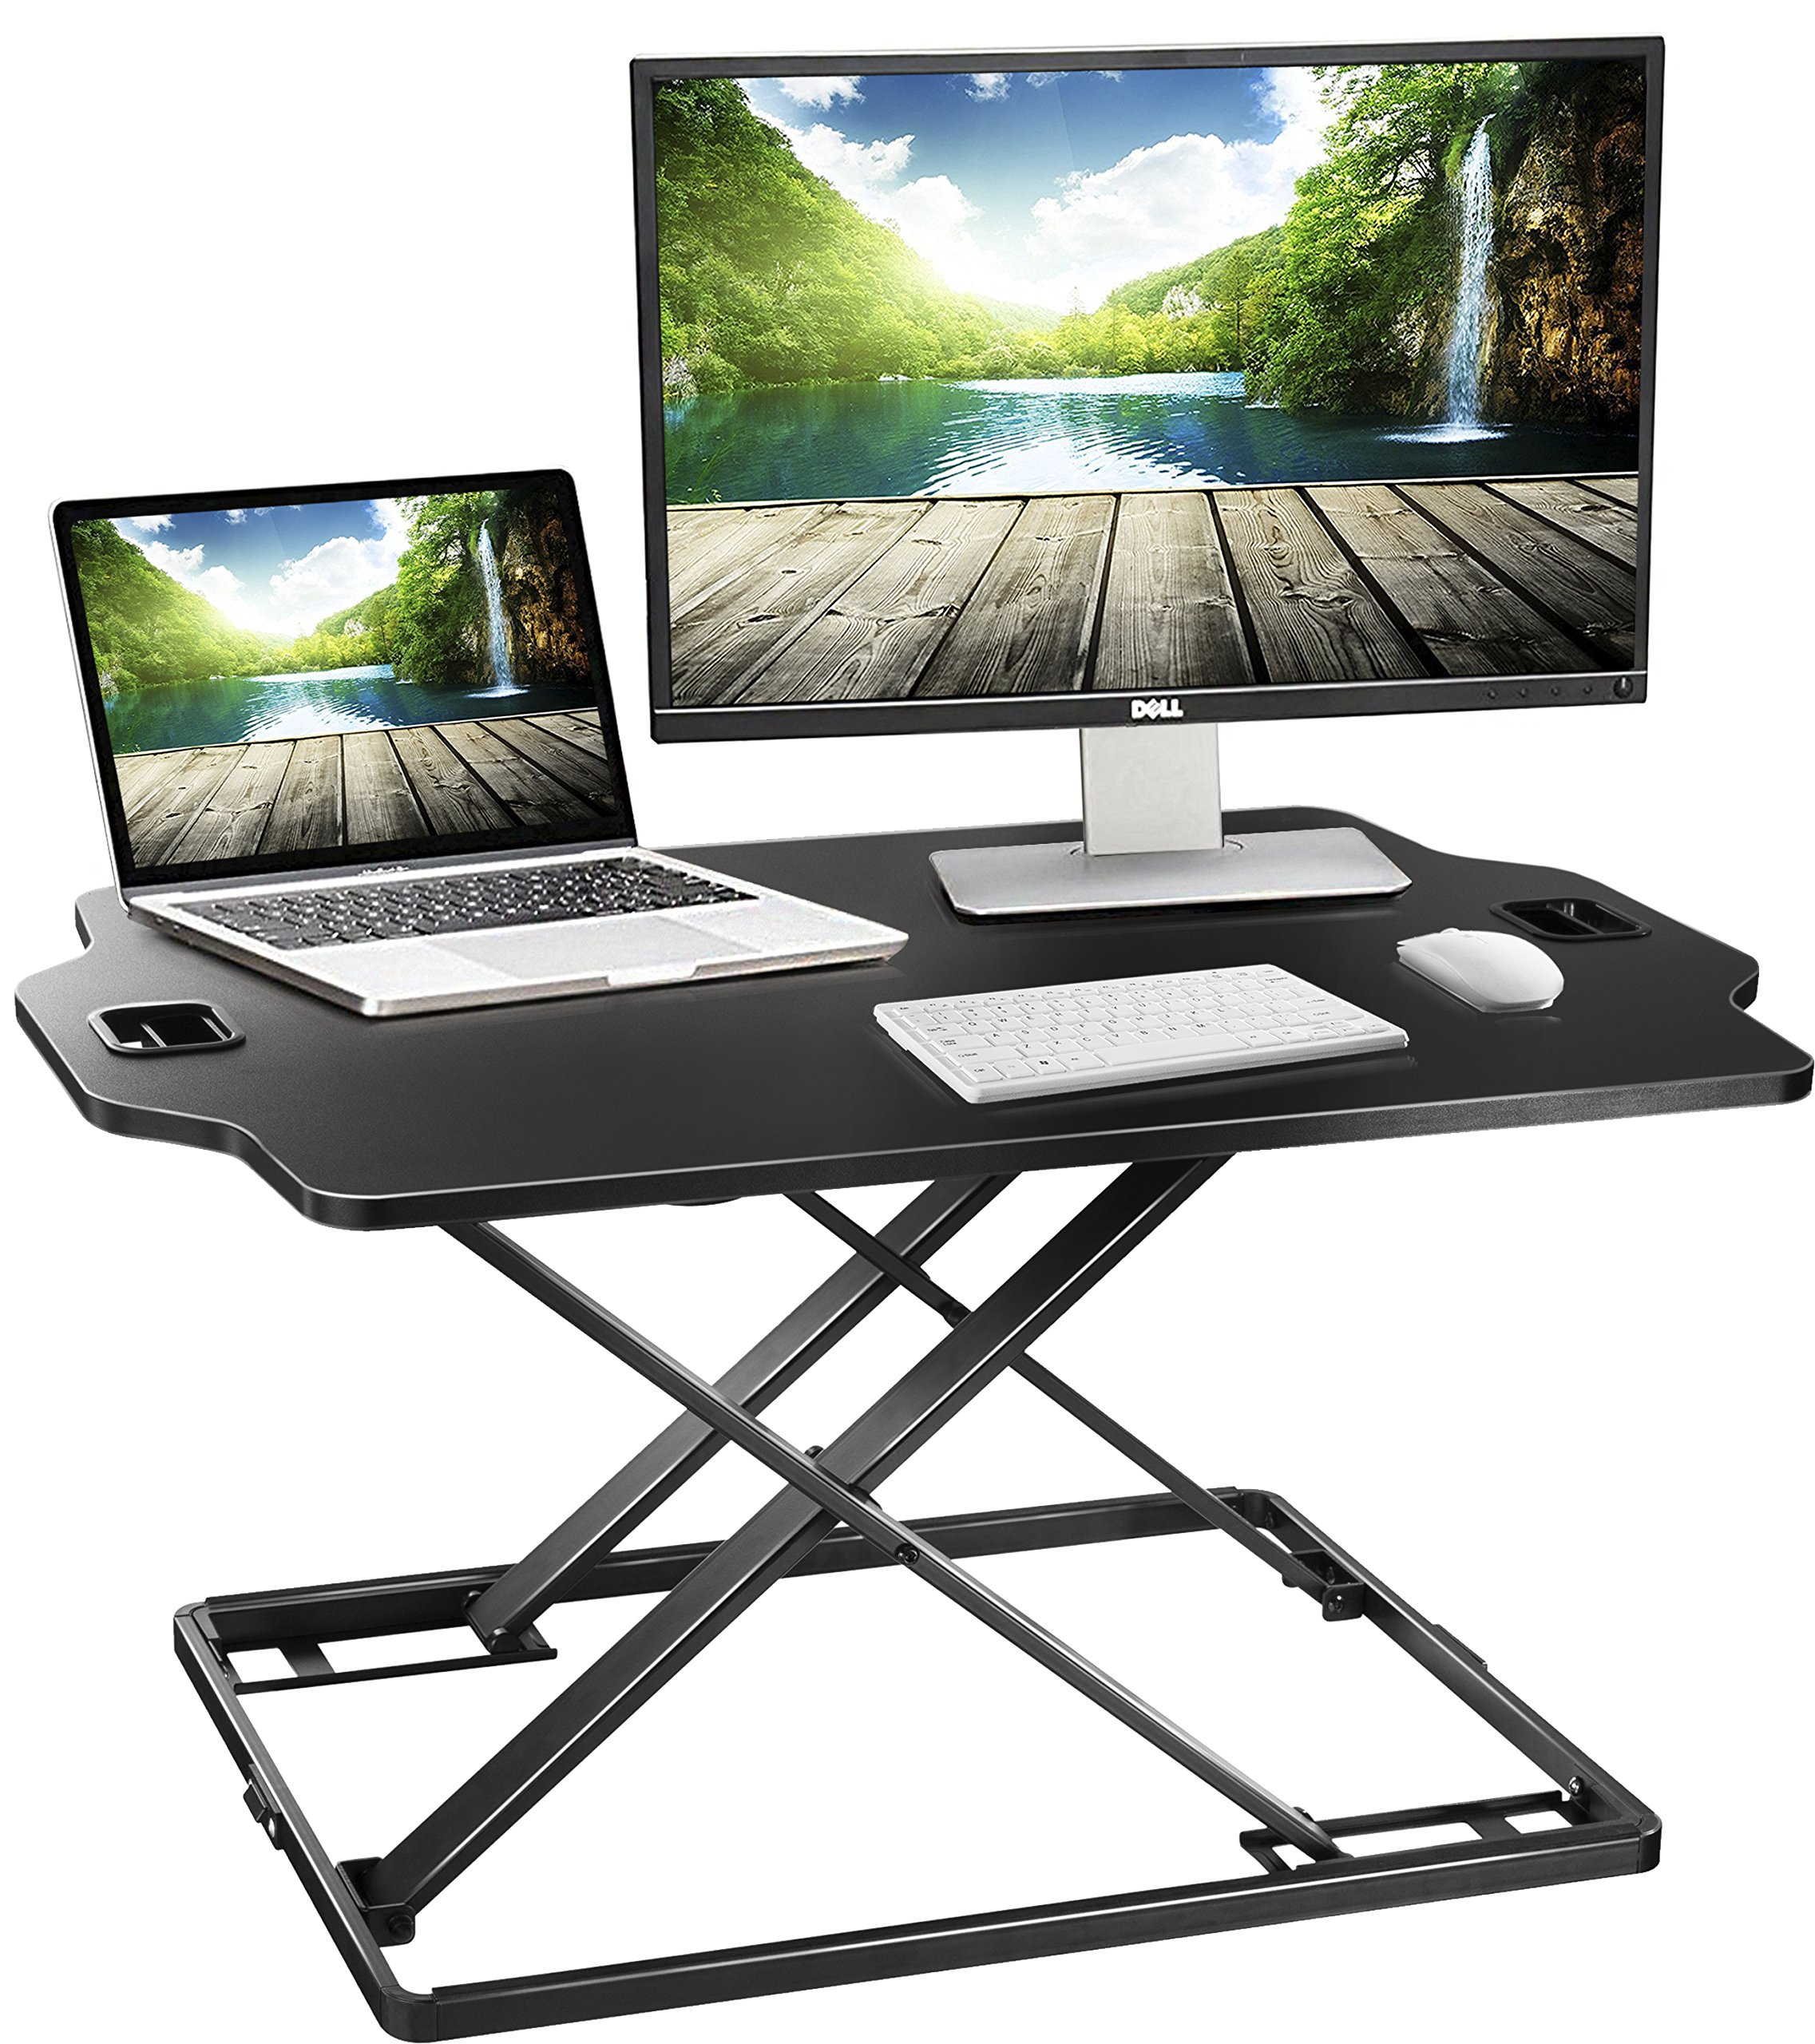 Standing Desk Converter - Height Adjustable Sit Stand up Desk Riser Platform Station - Ultra Slim Desktop Standing up Workstation 32'' Black